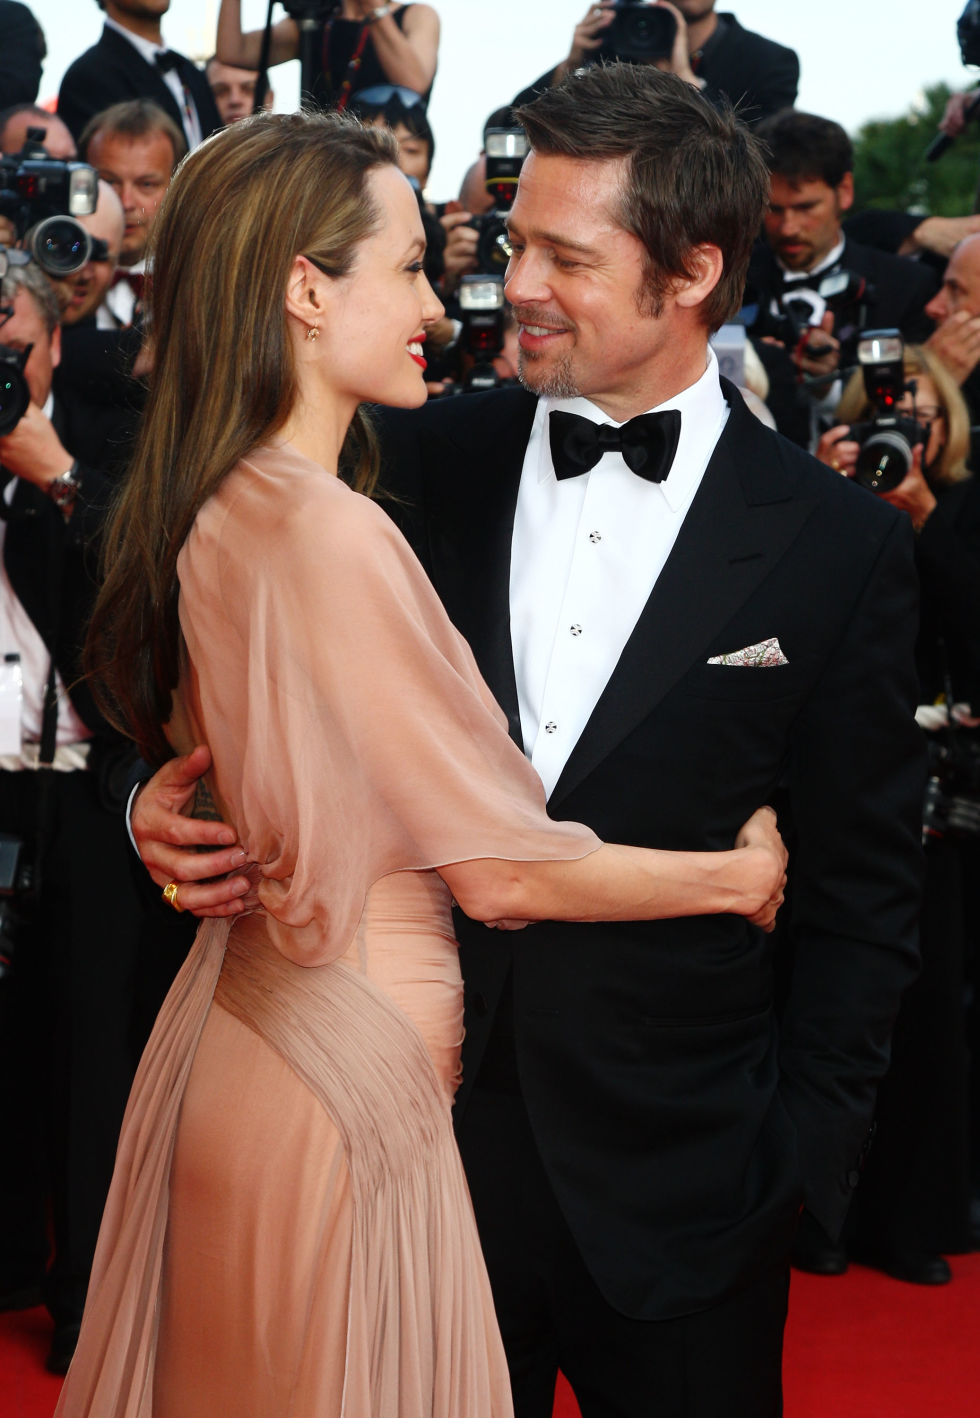 At the Inglourious Basterds premiere at Cannes Film Festival.